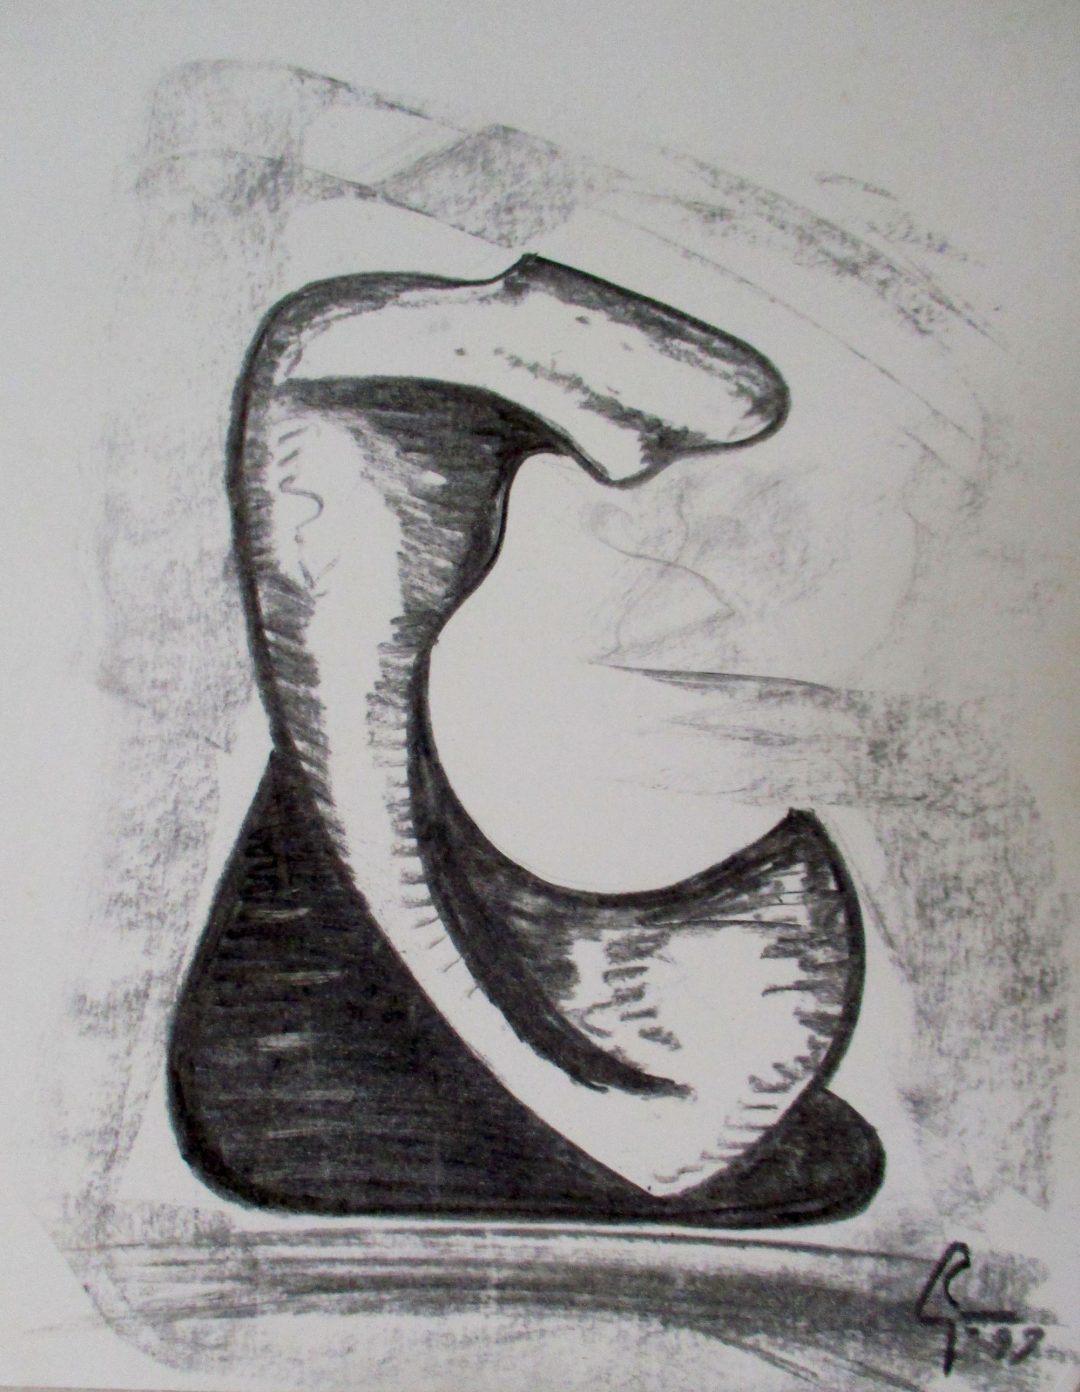 Carboncino 2